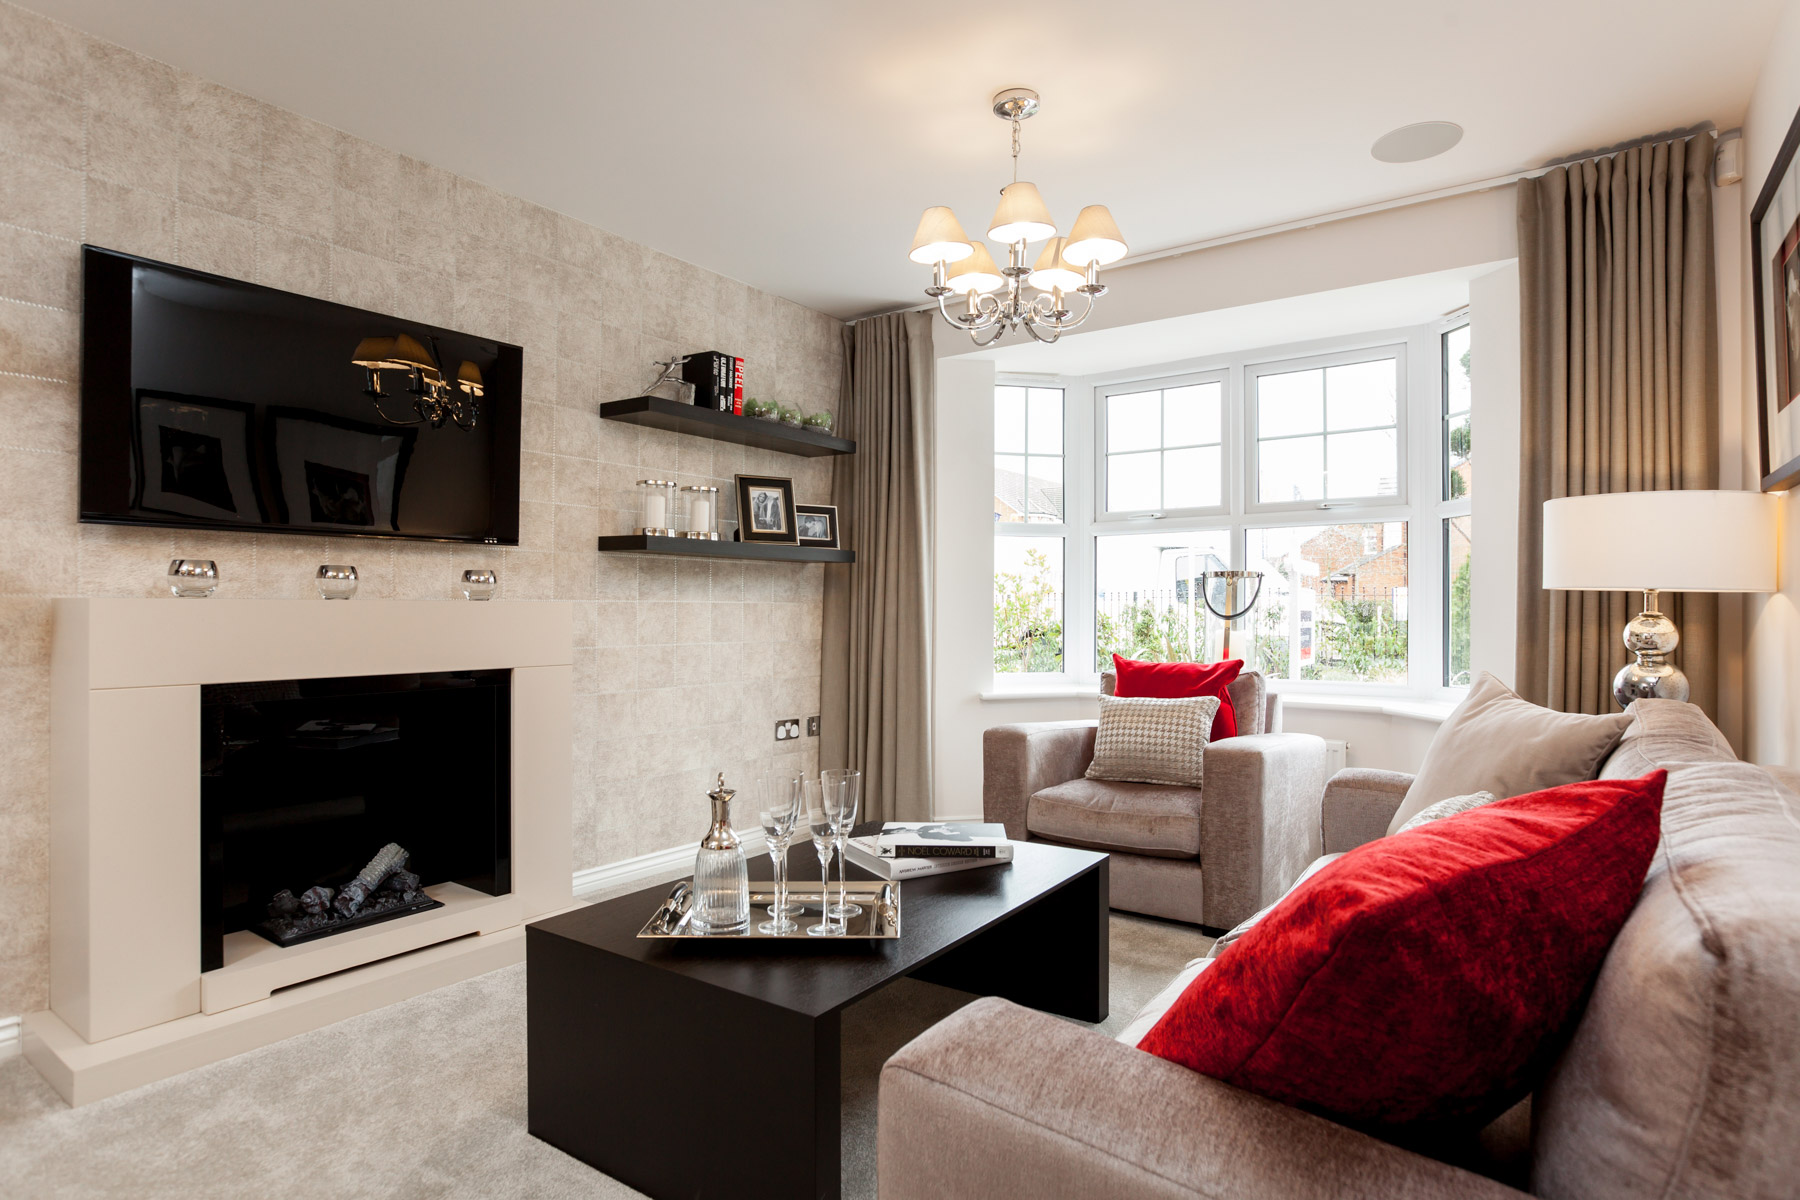 007_SG_Downham_Living_Room